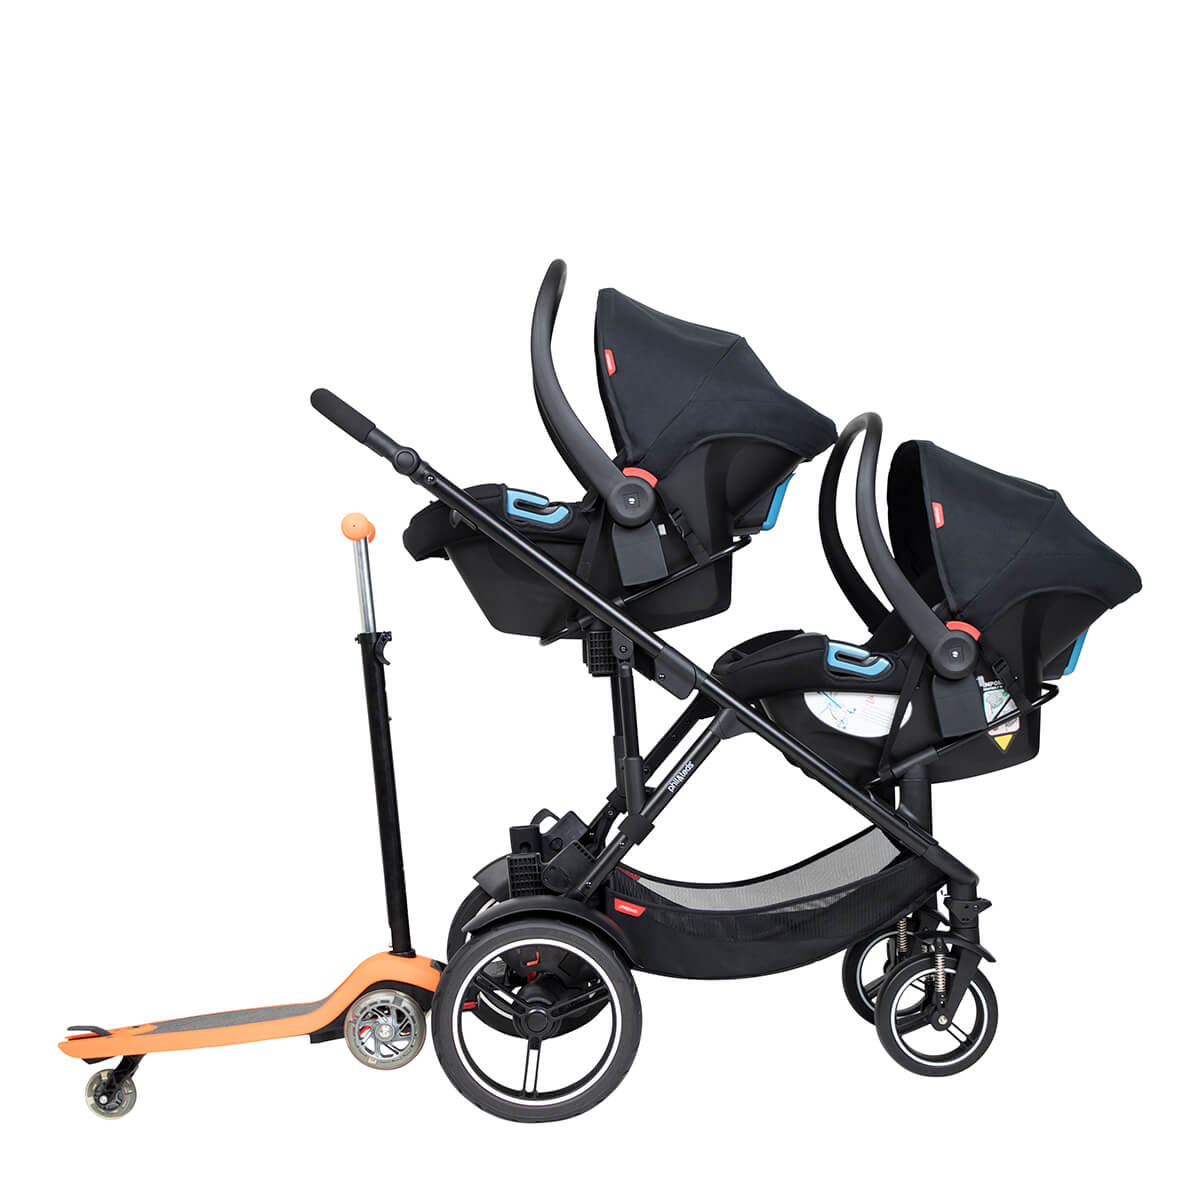 https://cdn.accentuate.io/4509529178200/19272835367000/philteds-voyager-buggy-with-double-travel-systems-and-freerider-stroller-board-in-the-rear-v1626484764808.jpg?1200x1200